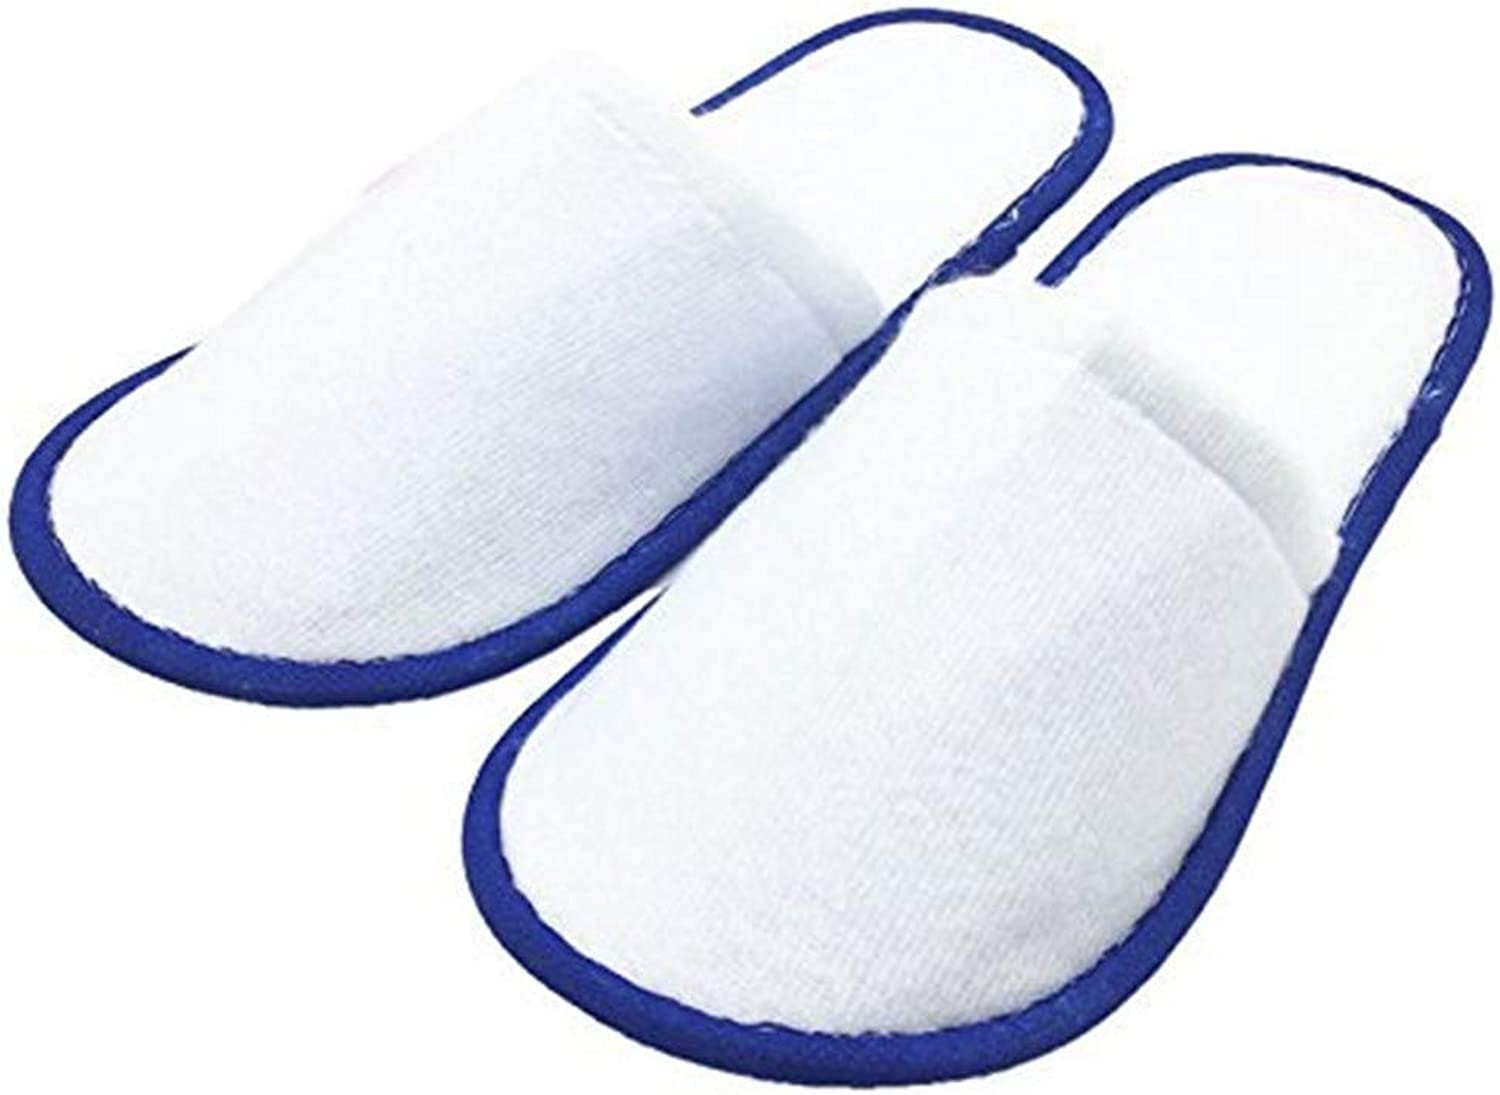 Disposable Indoor Hotel Slippers, Closed Toe One Size Fit Most Men and Women for Spa Slippers, Party Guest, Hotel and Travel